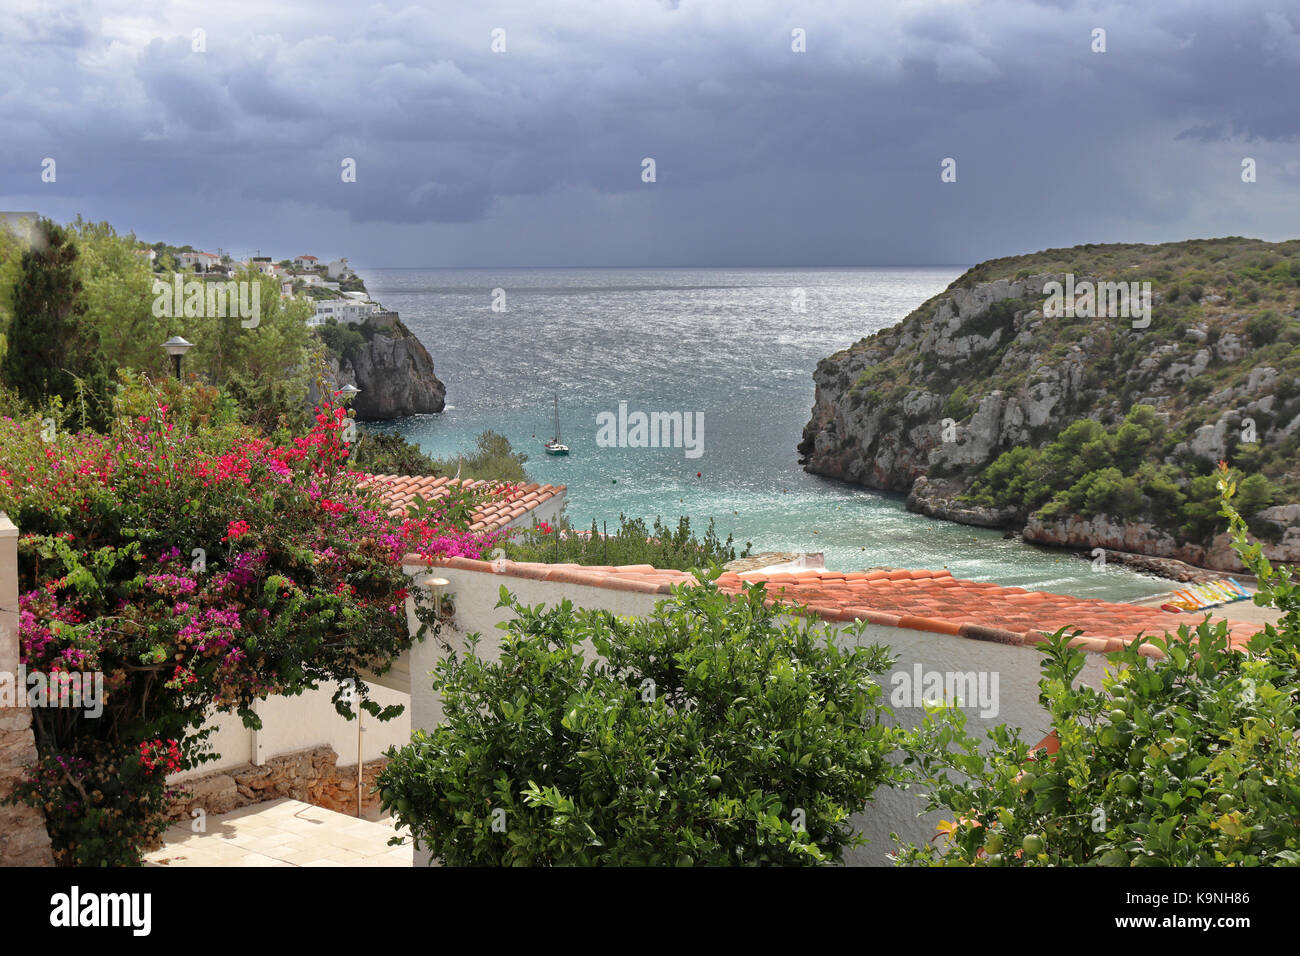 The Minorcan resort of Cala en Porter in the Mediterranean sea with stormy clouds - Stock Image